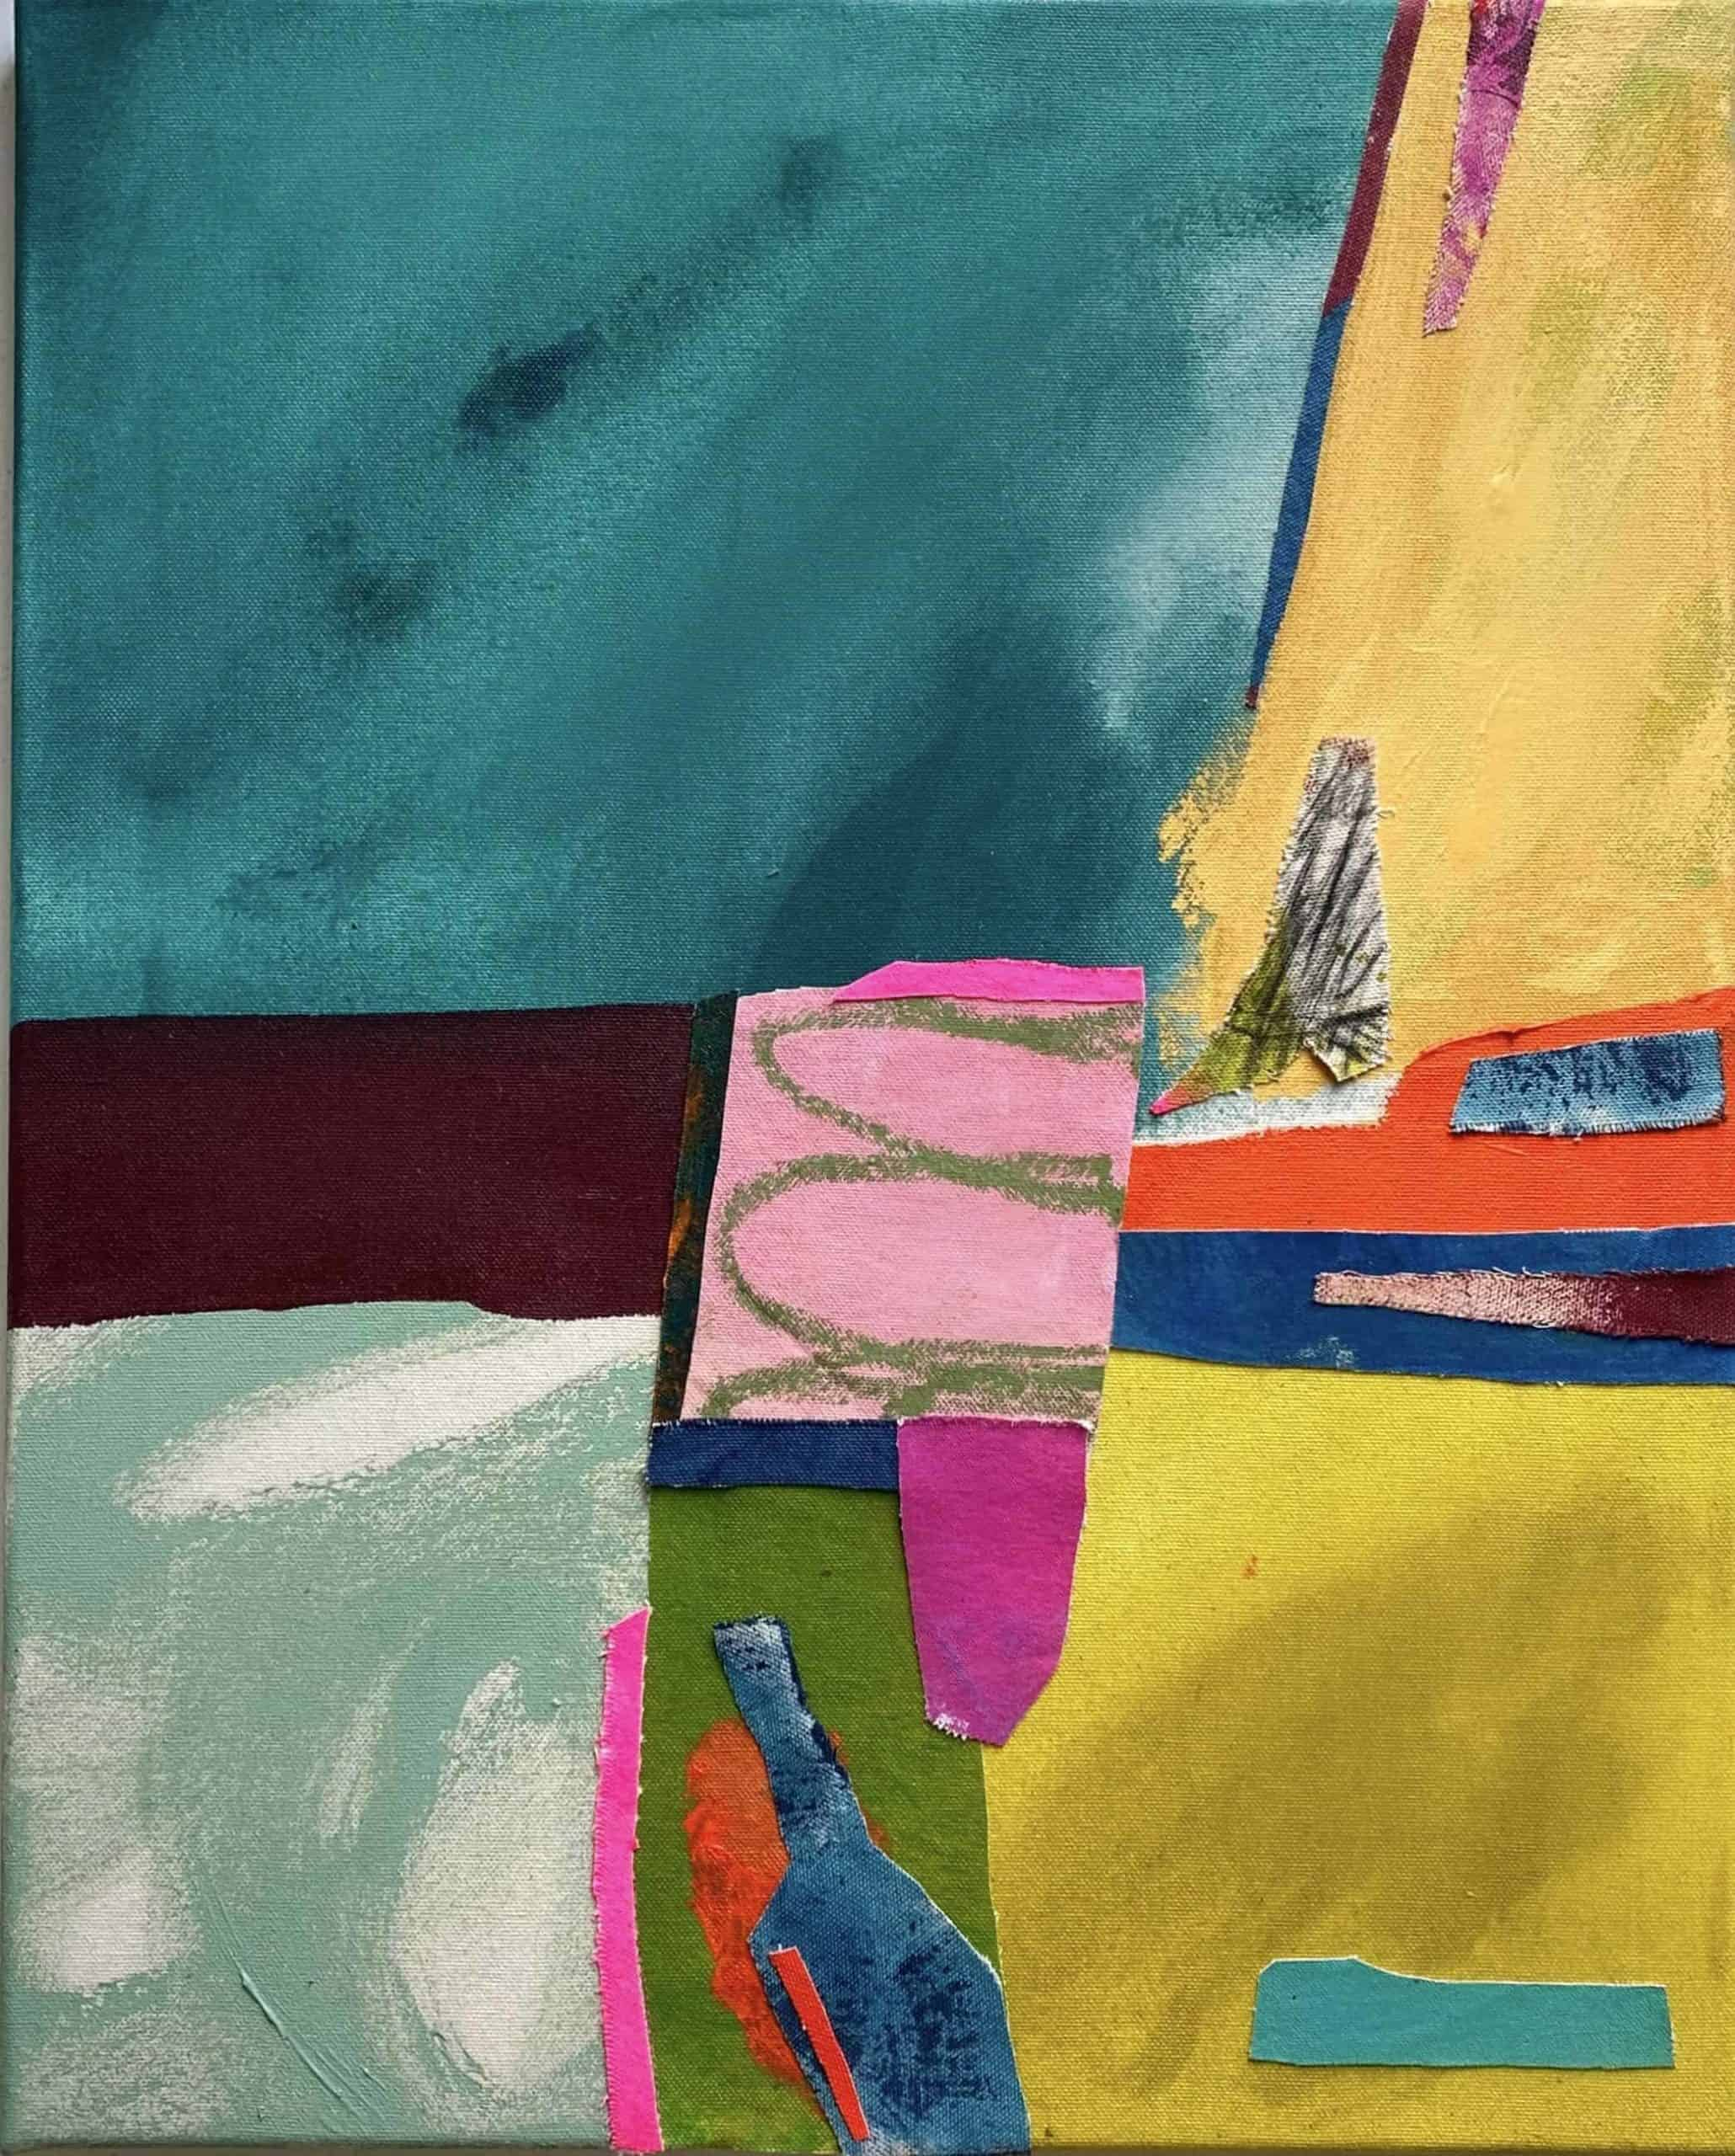 Calamity Jane's Secret Love by Frankie Thorp abstract collage and acrylic on canvas art